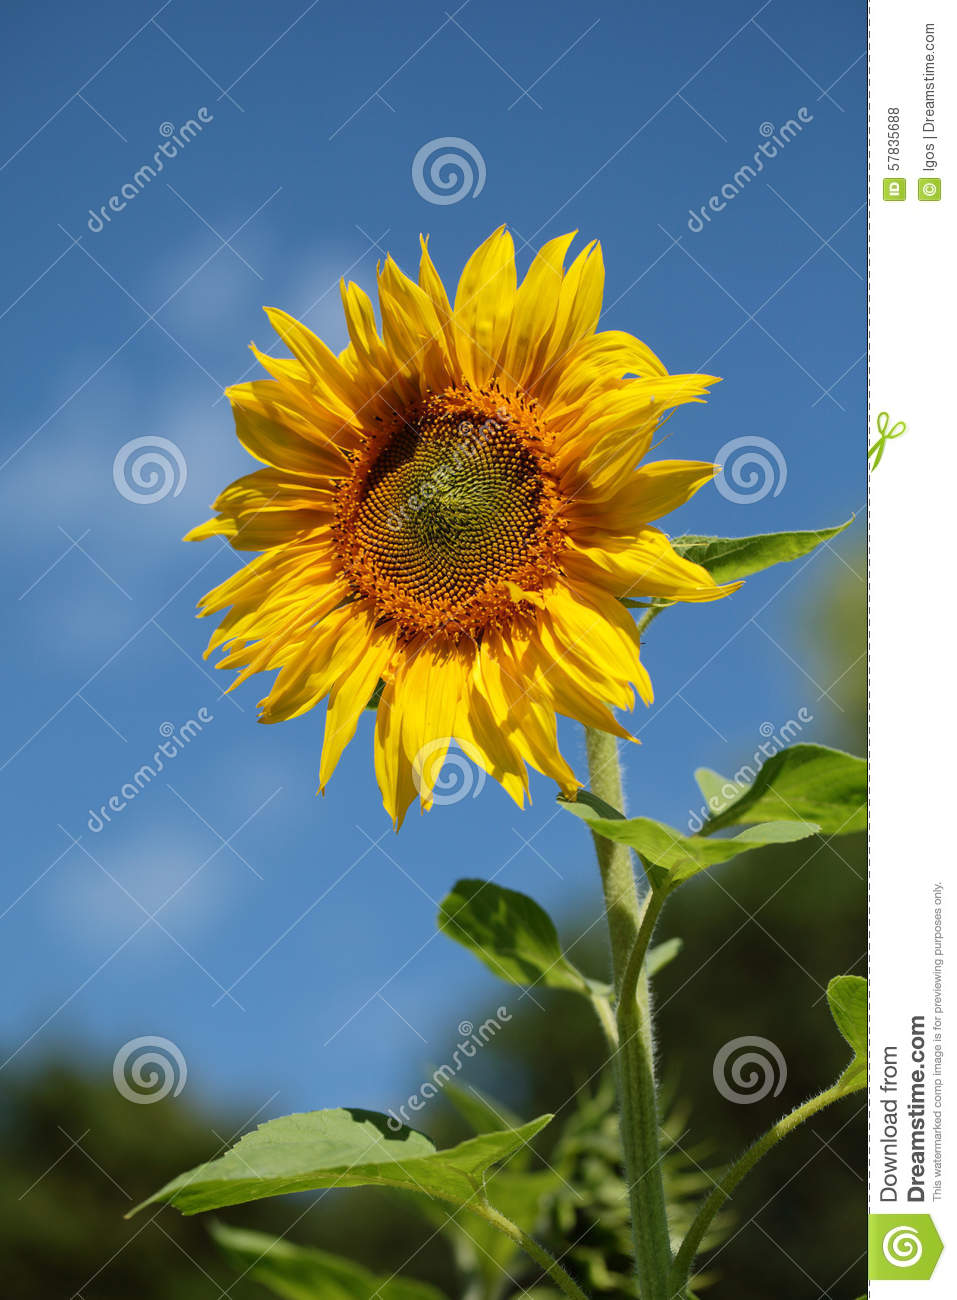 A Sample Sunflower Oil Production Business Plan Template